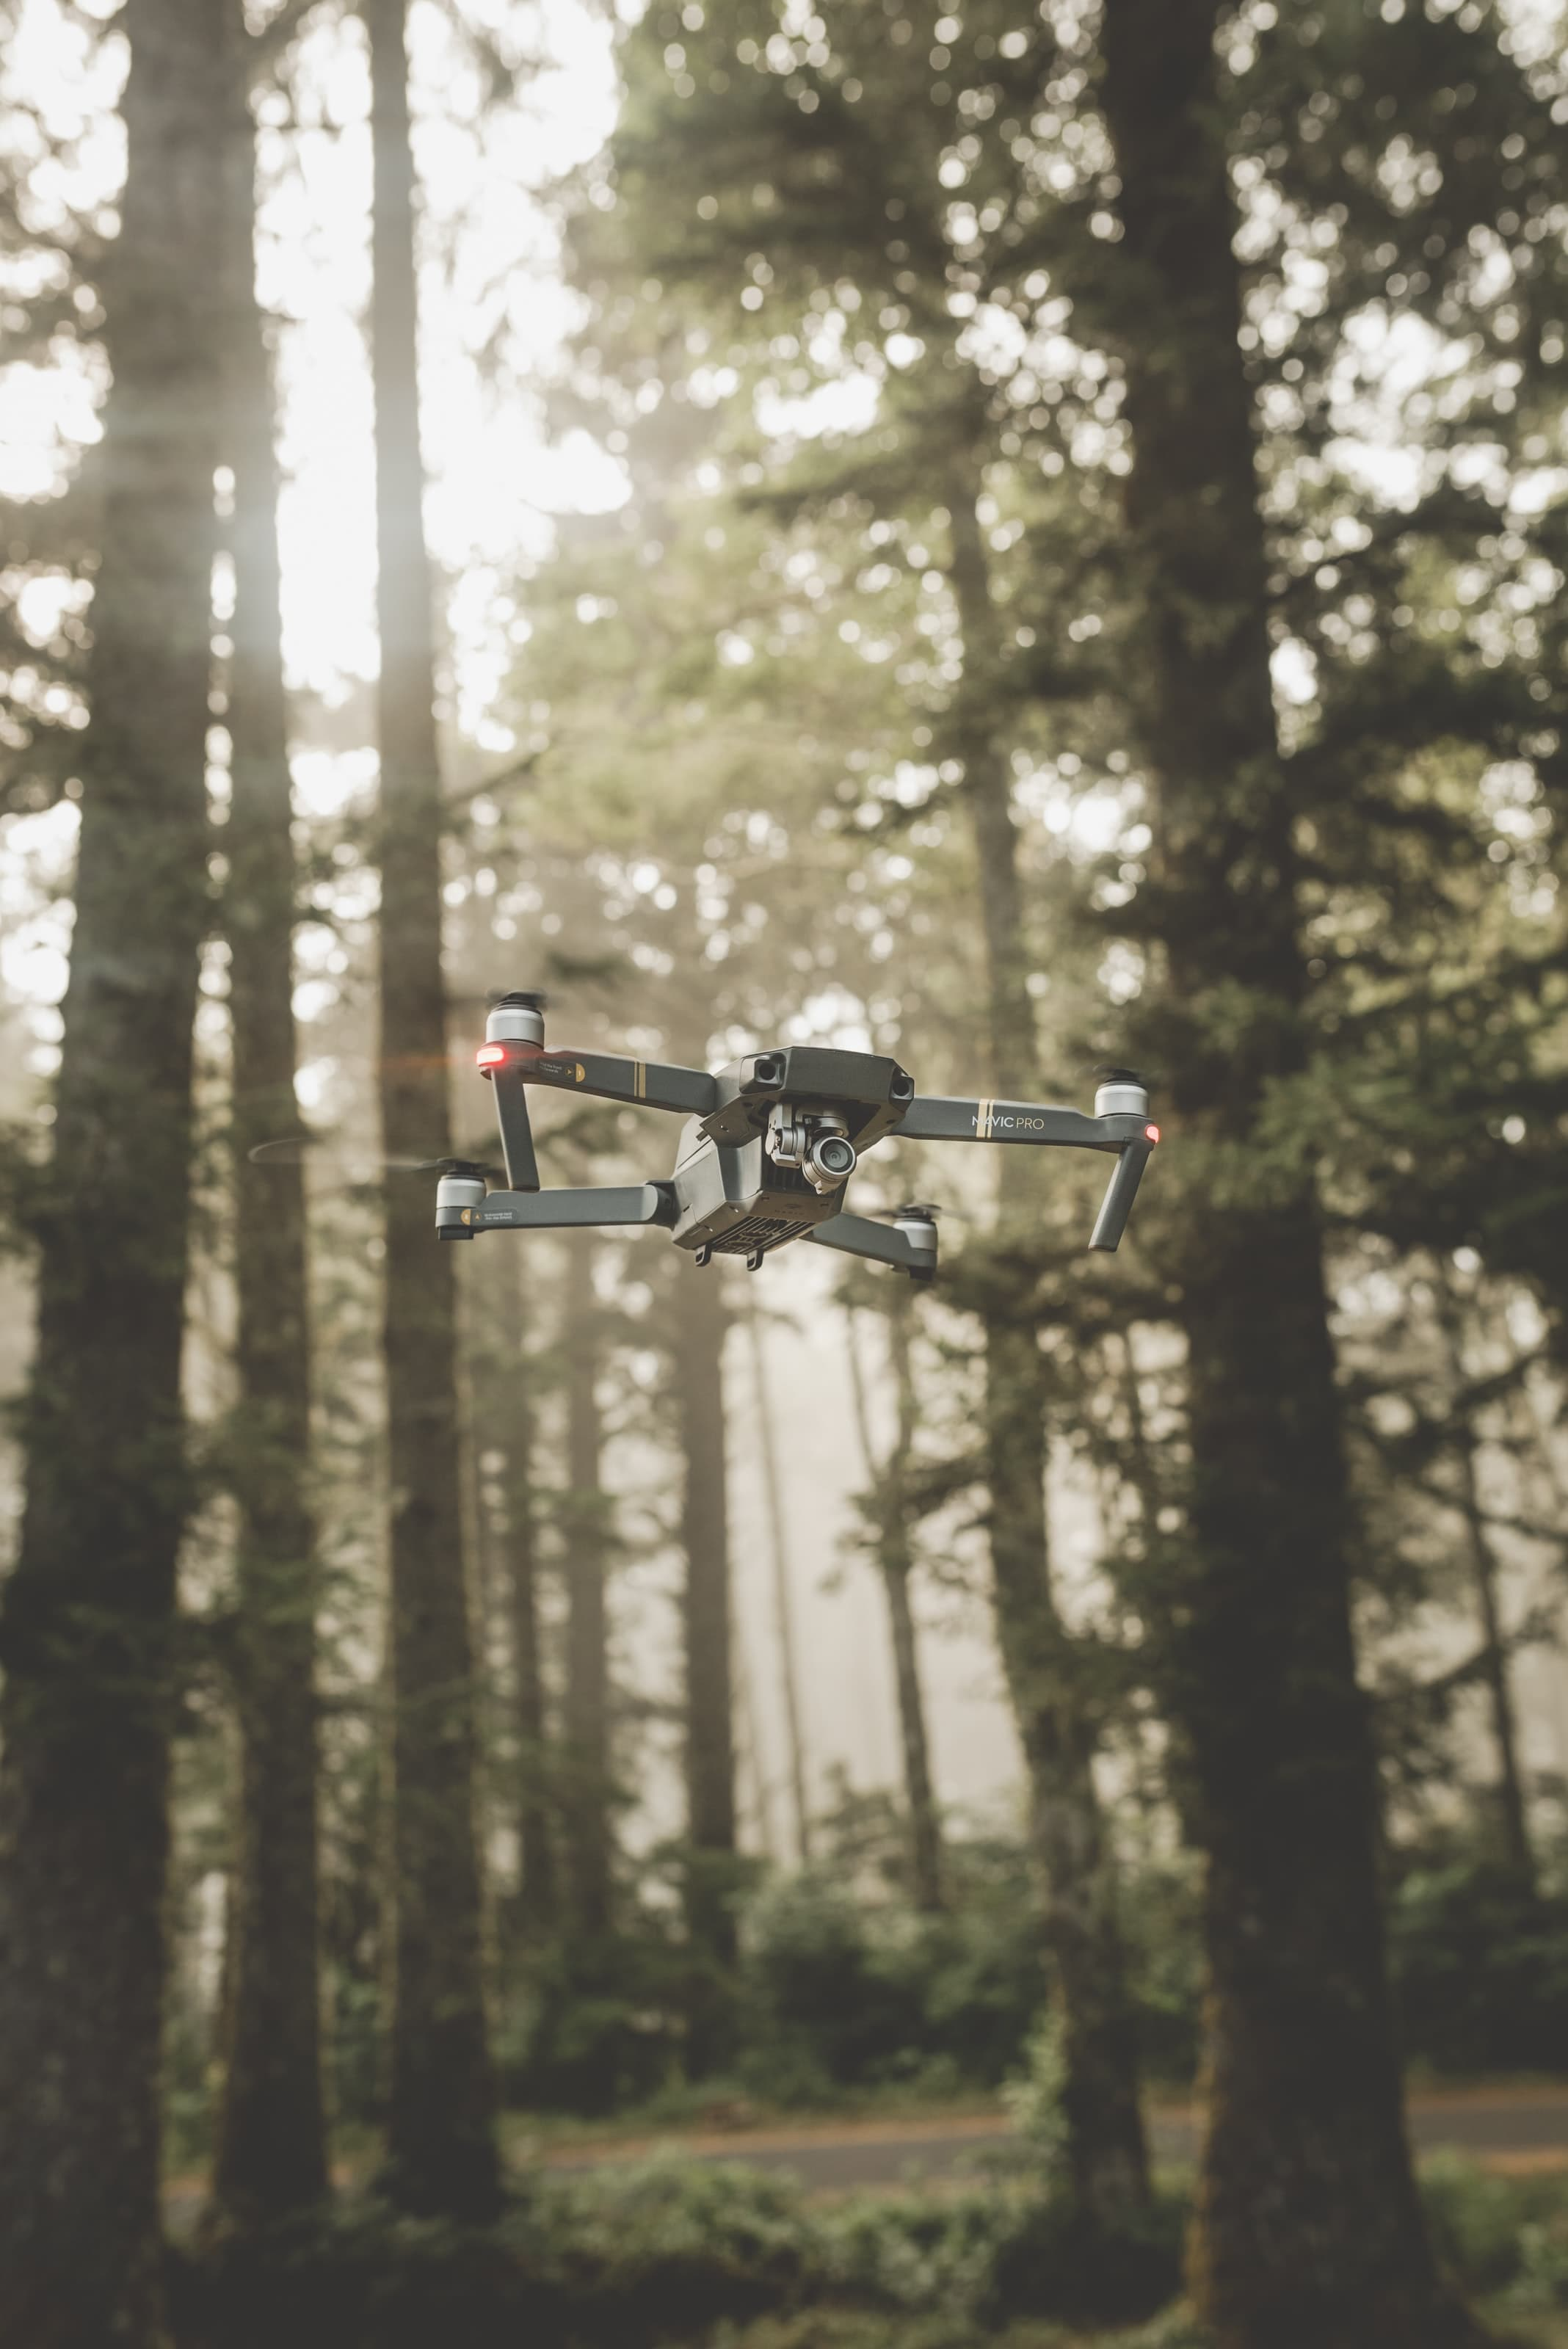 drone in forest